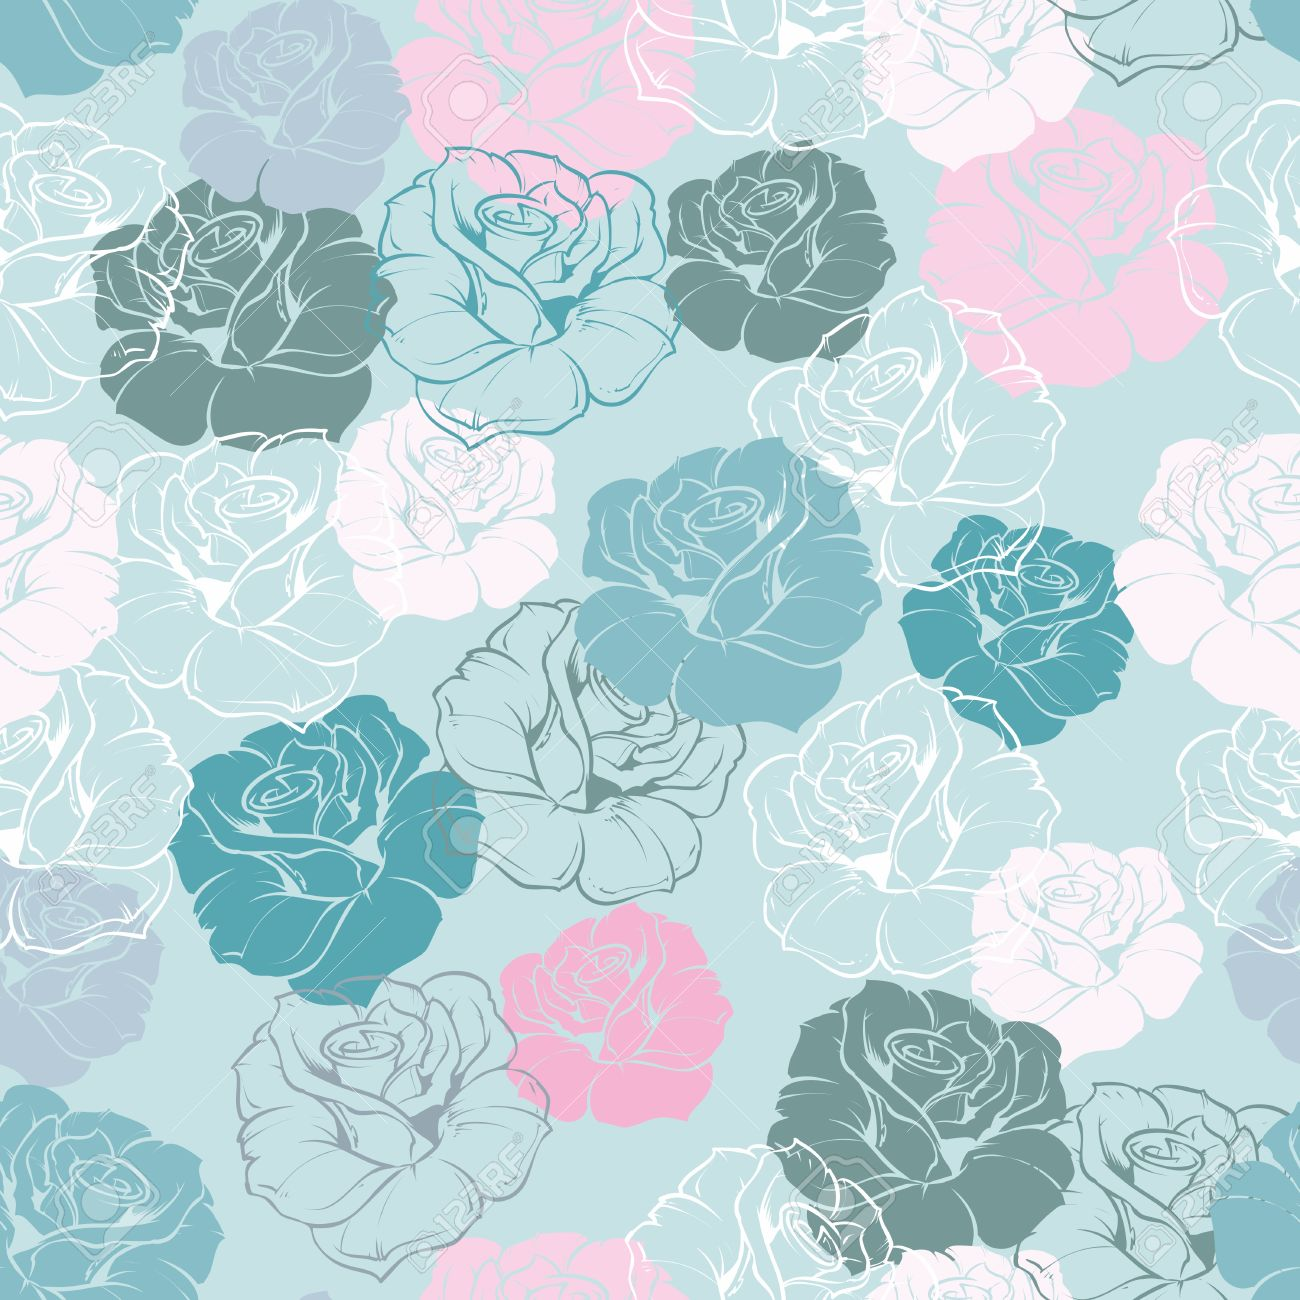 Seamless Floral Vector Pattern With Pink Green White Grey